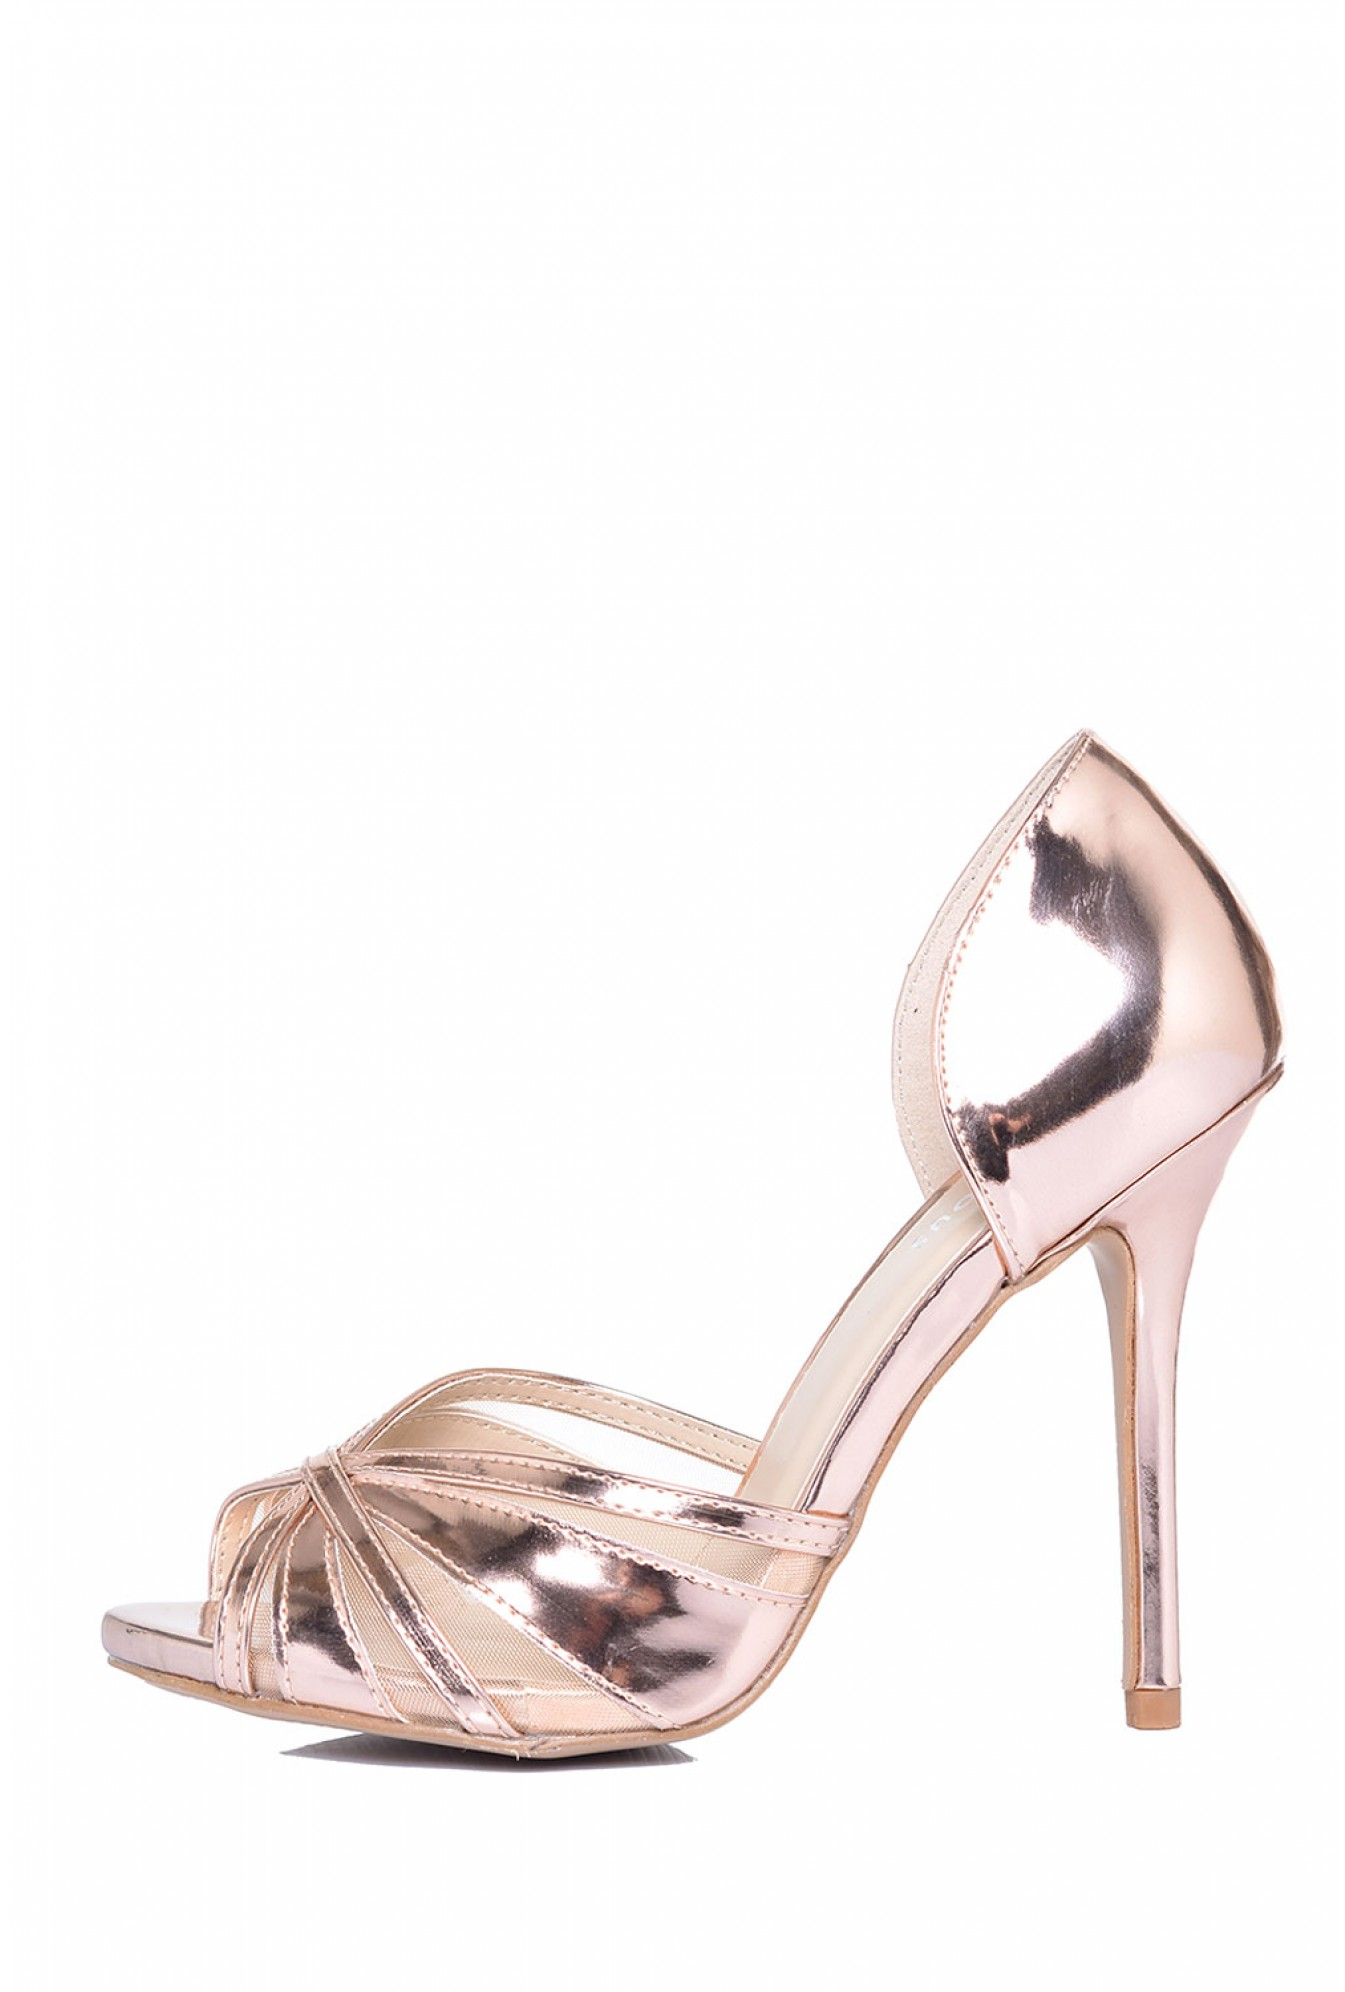 881956909cbd77 More Views. Margo Patent Sandal in Rose Gold. Glamorous